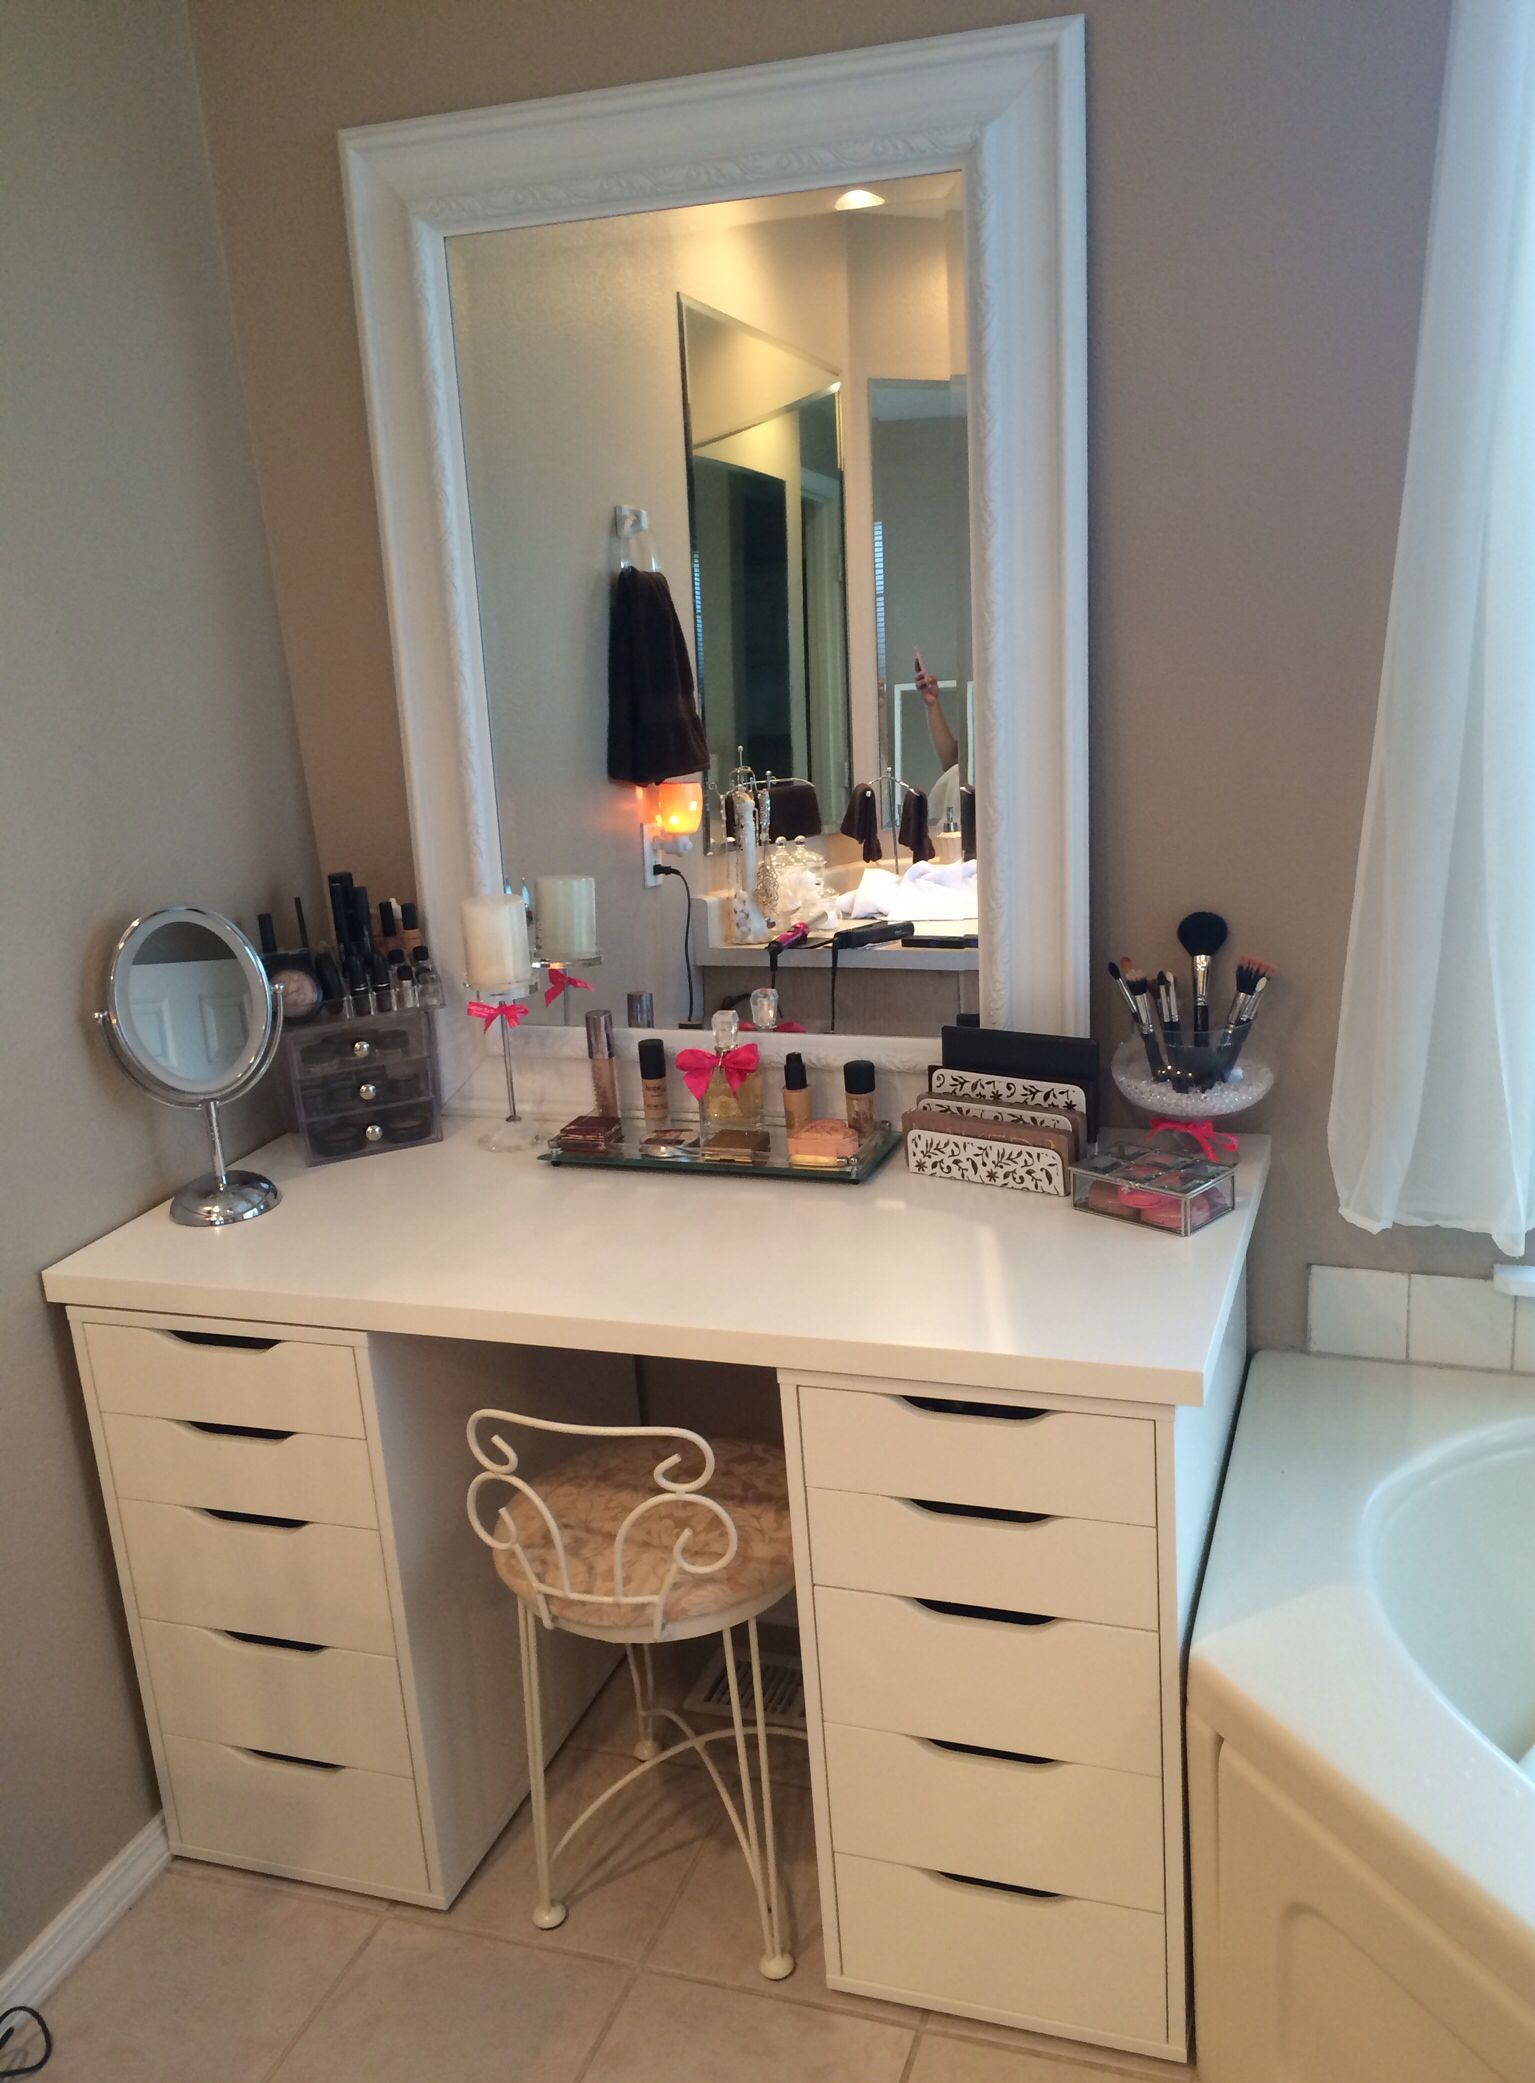 Makeup Vanity Ikea Drawers And Fred Meyer Mirror Bedroom Vanity Modern Vanity Lighting Bedroom Makeup Vanity